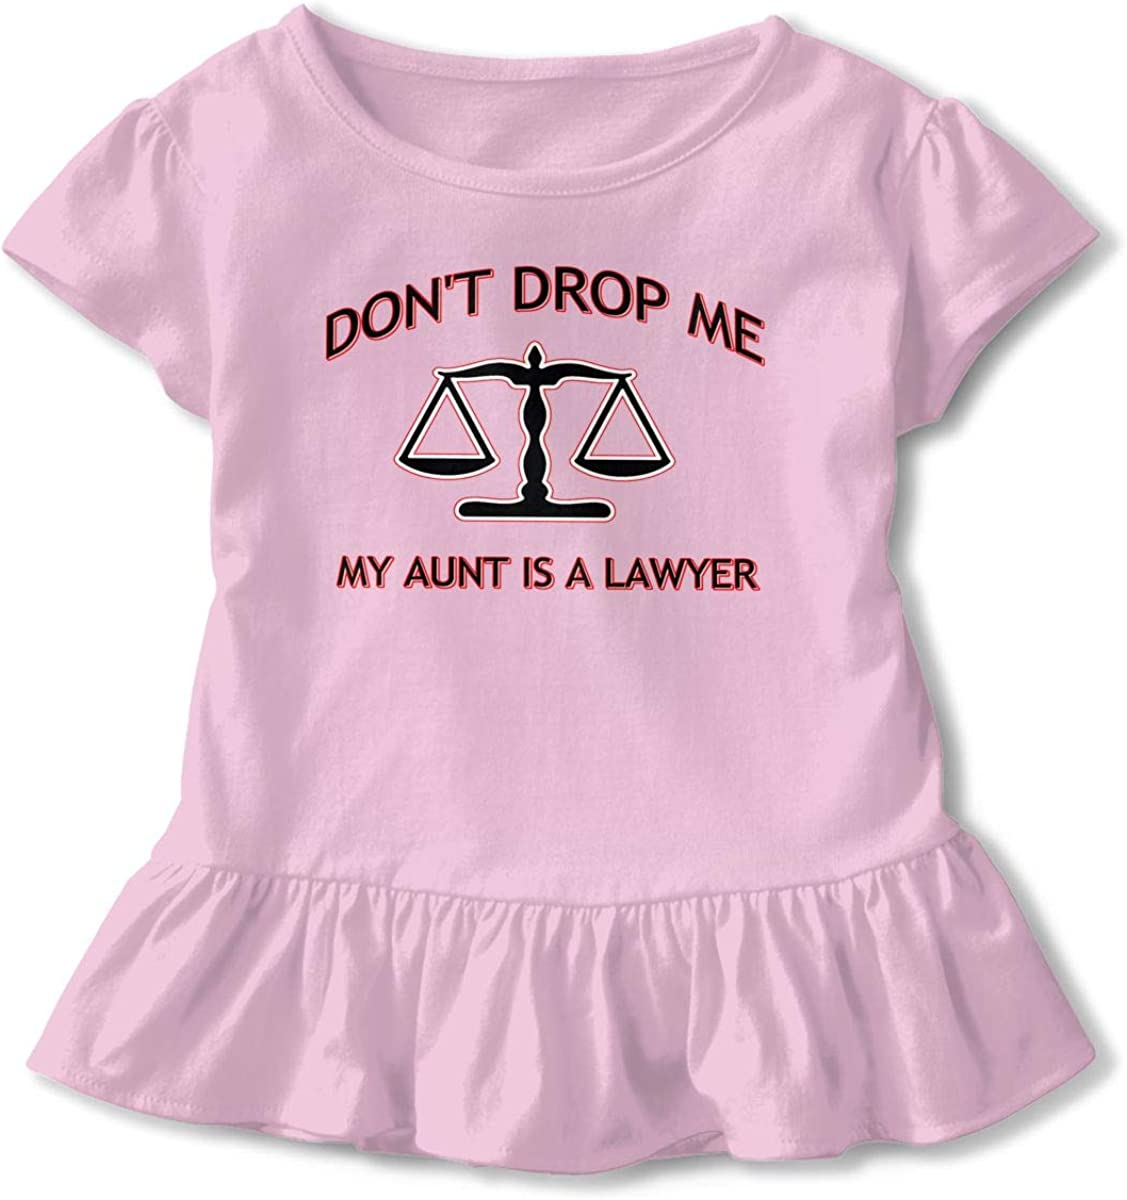 Dont Drop Me My Aunt is A Lawyer Toddler Baby Girls Cotton Ruffle Short Sleeve Top Basic T-Shirt 2-6T